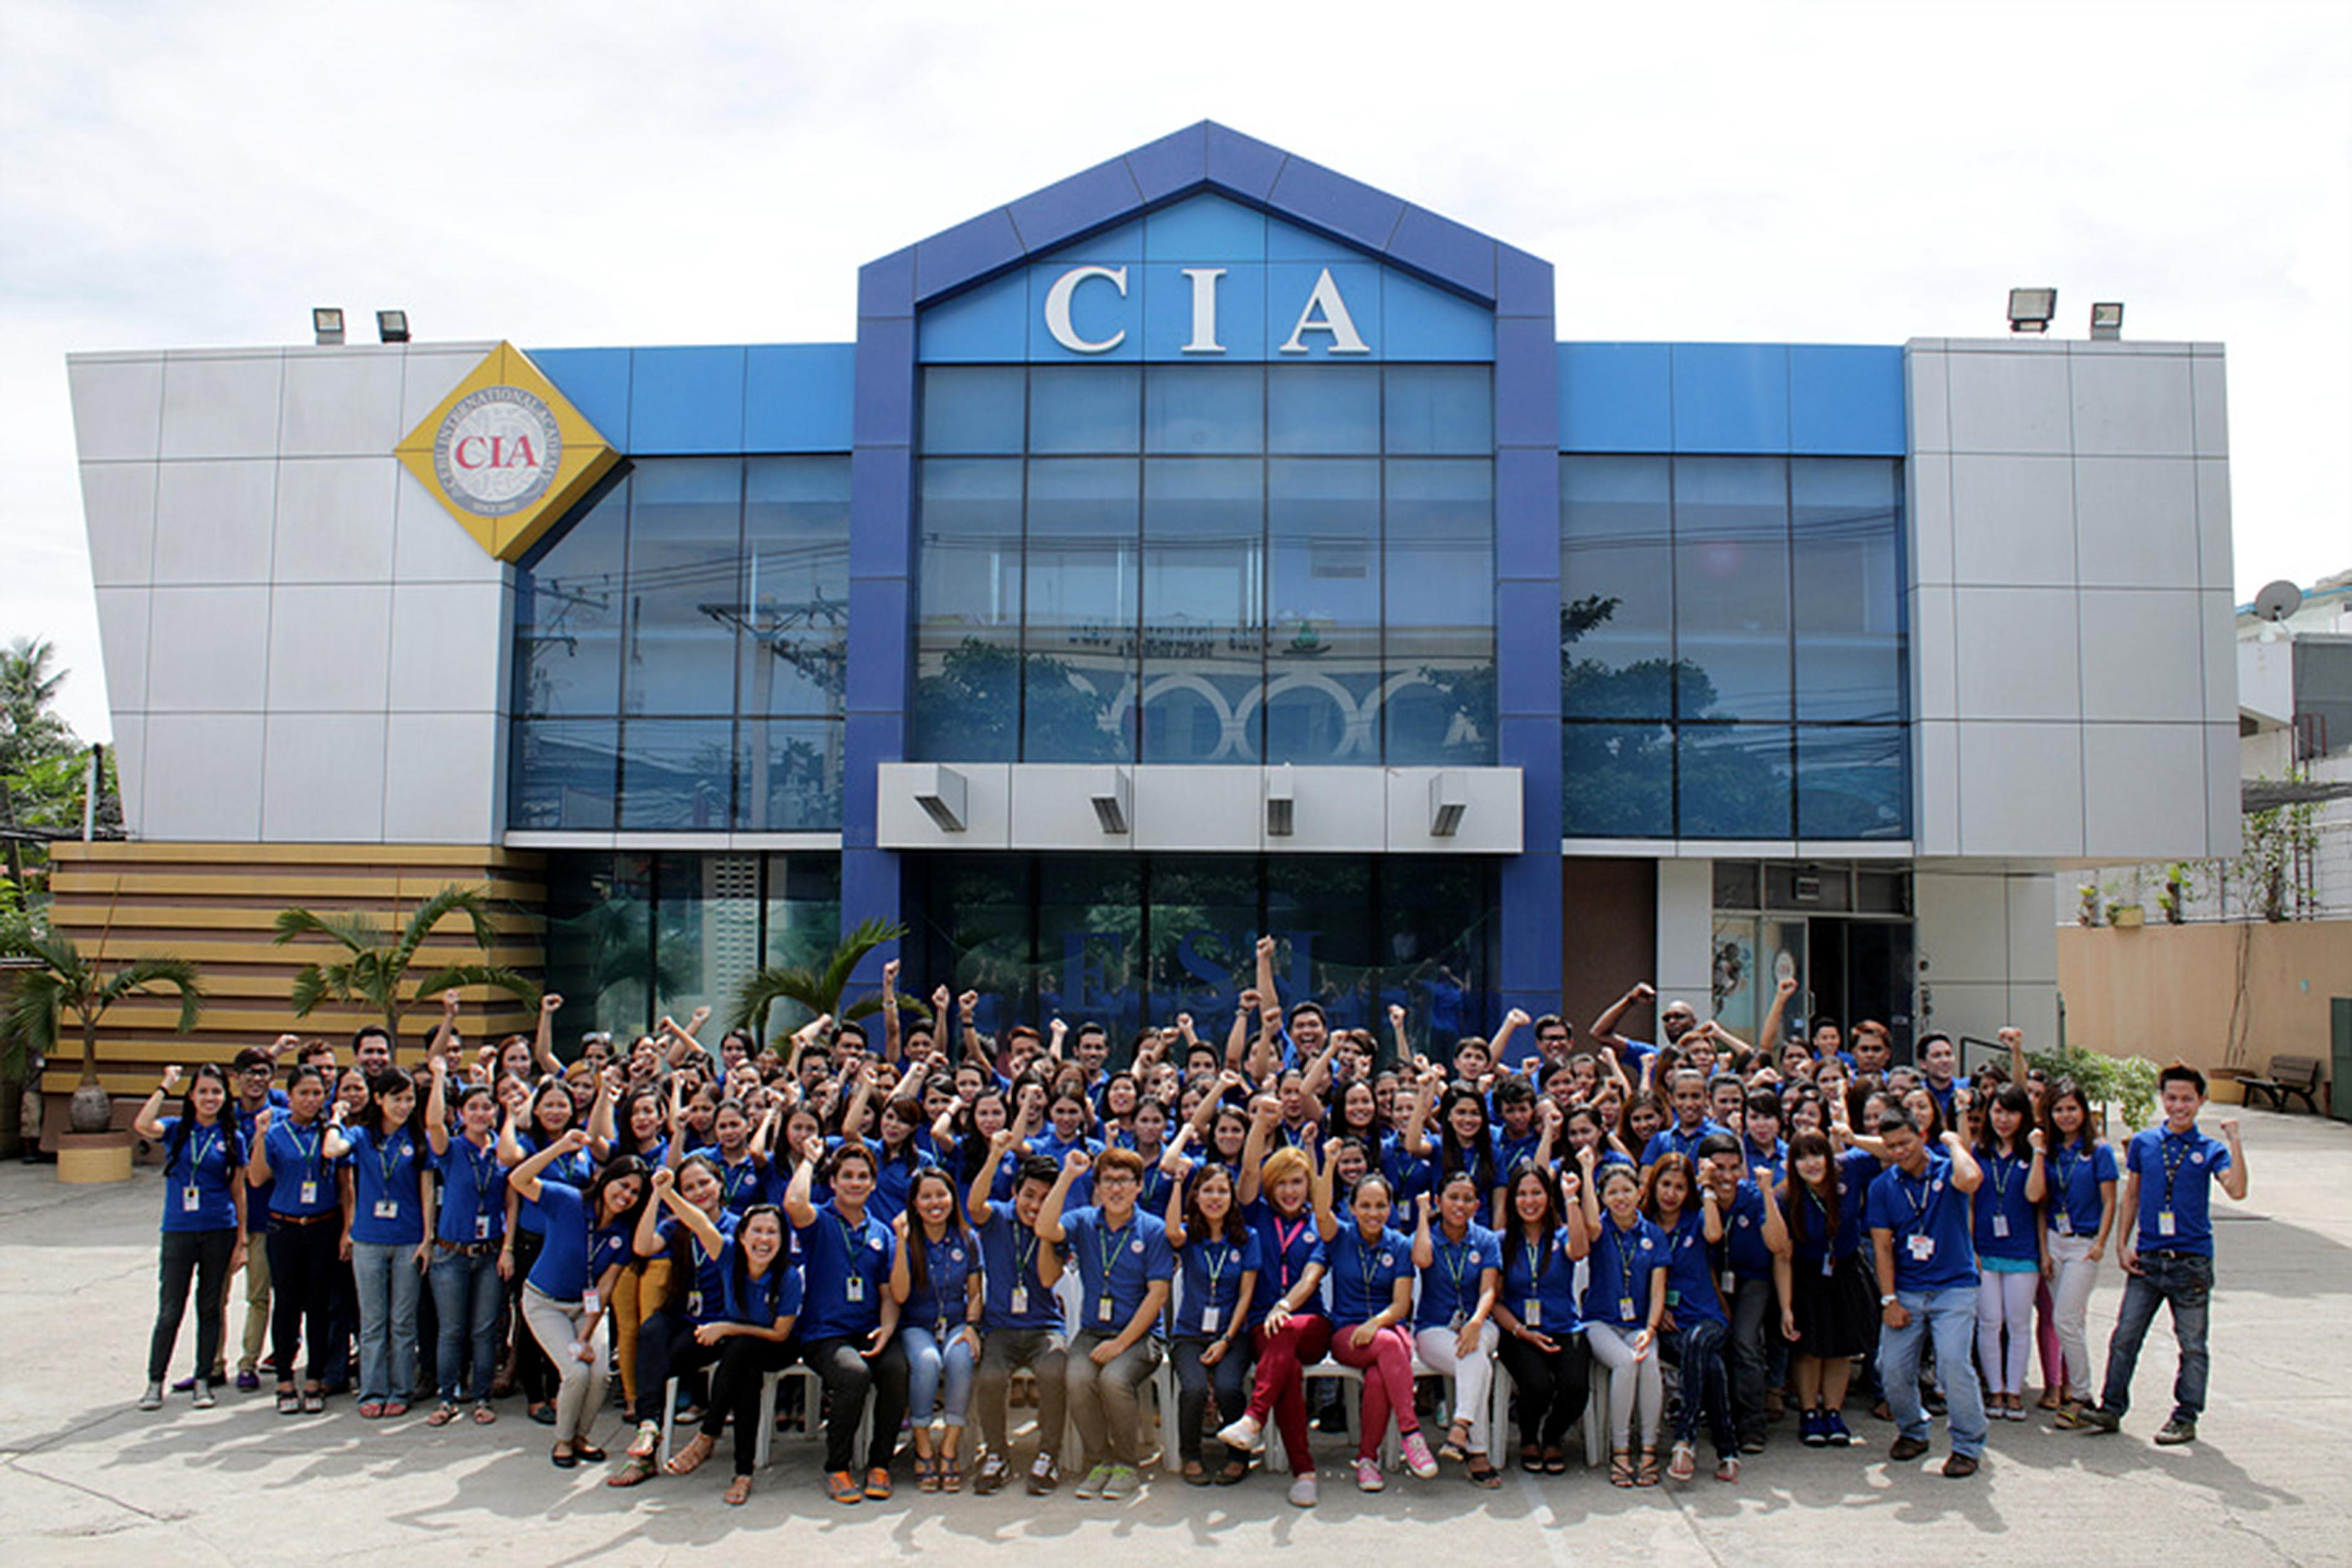 CIA-Building-with-all-the-teachers